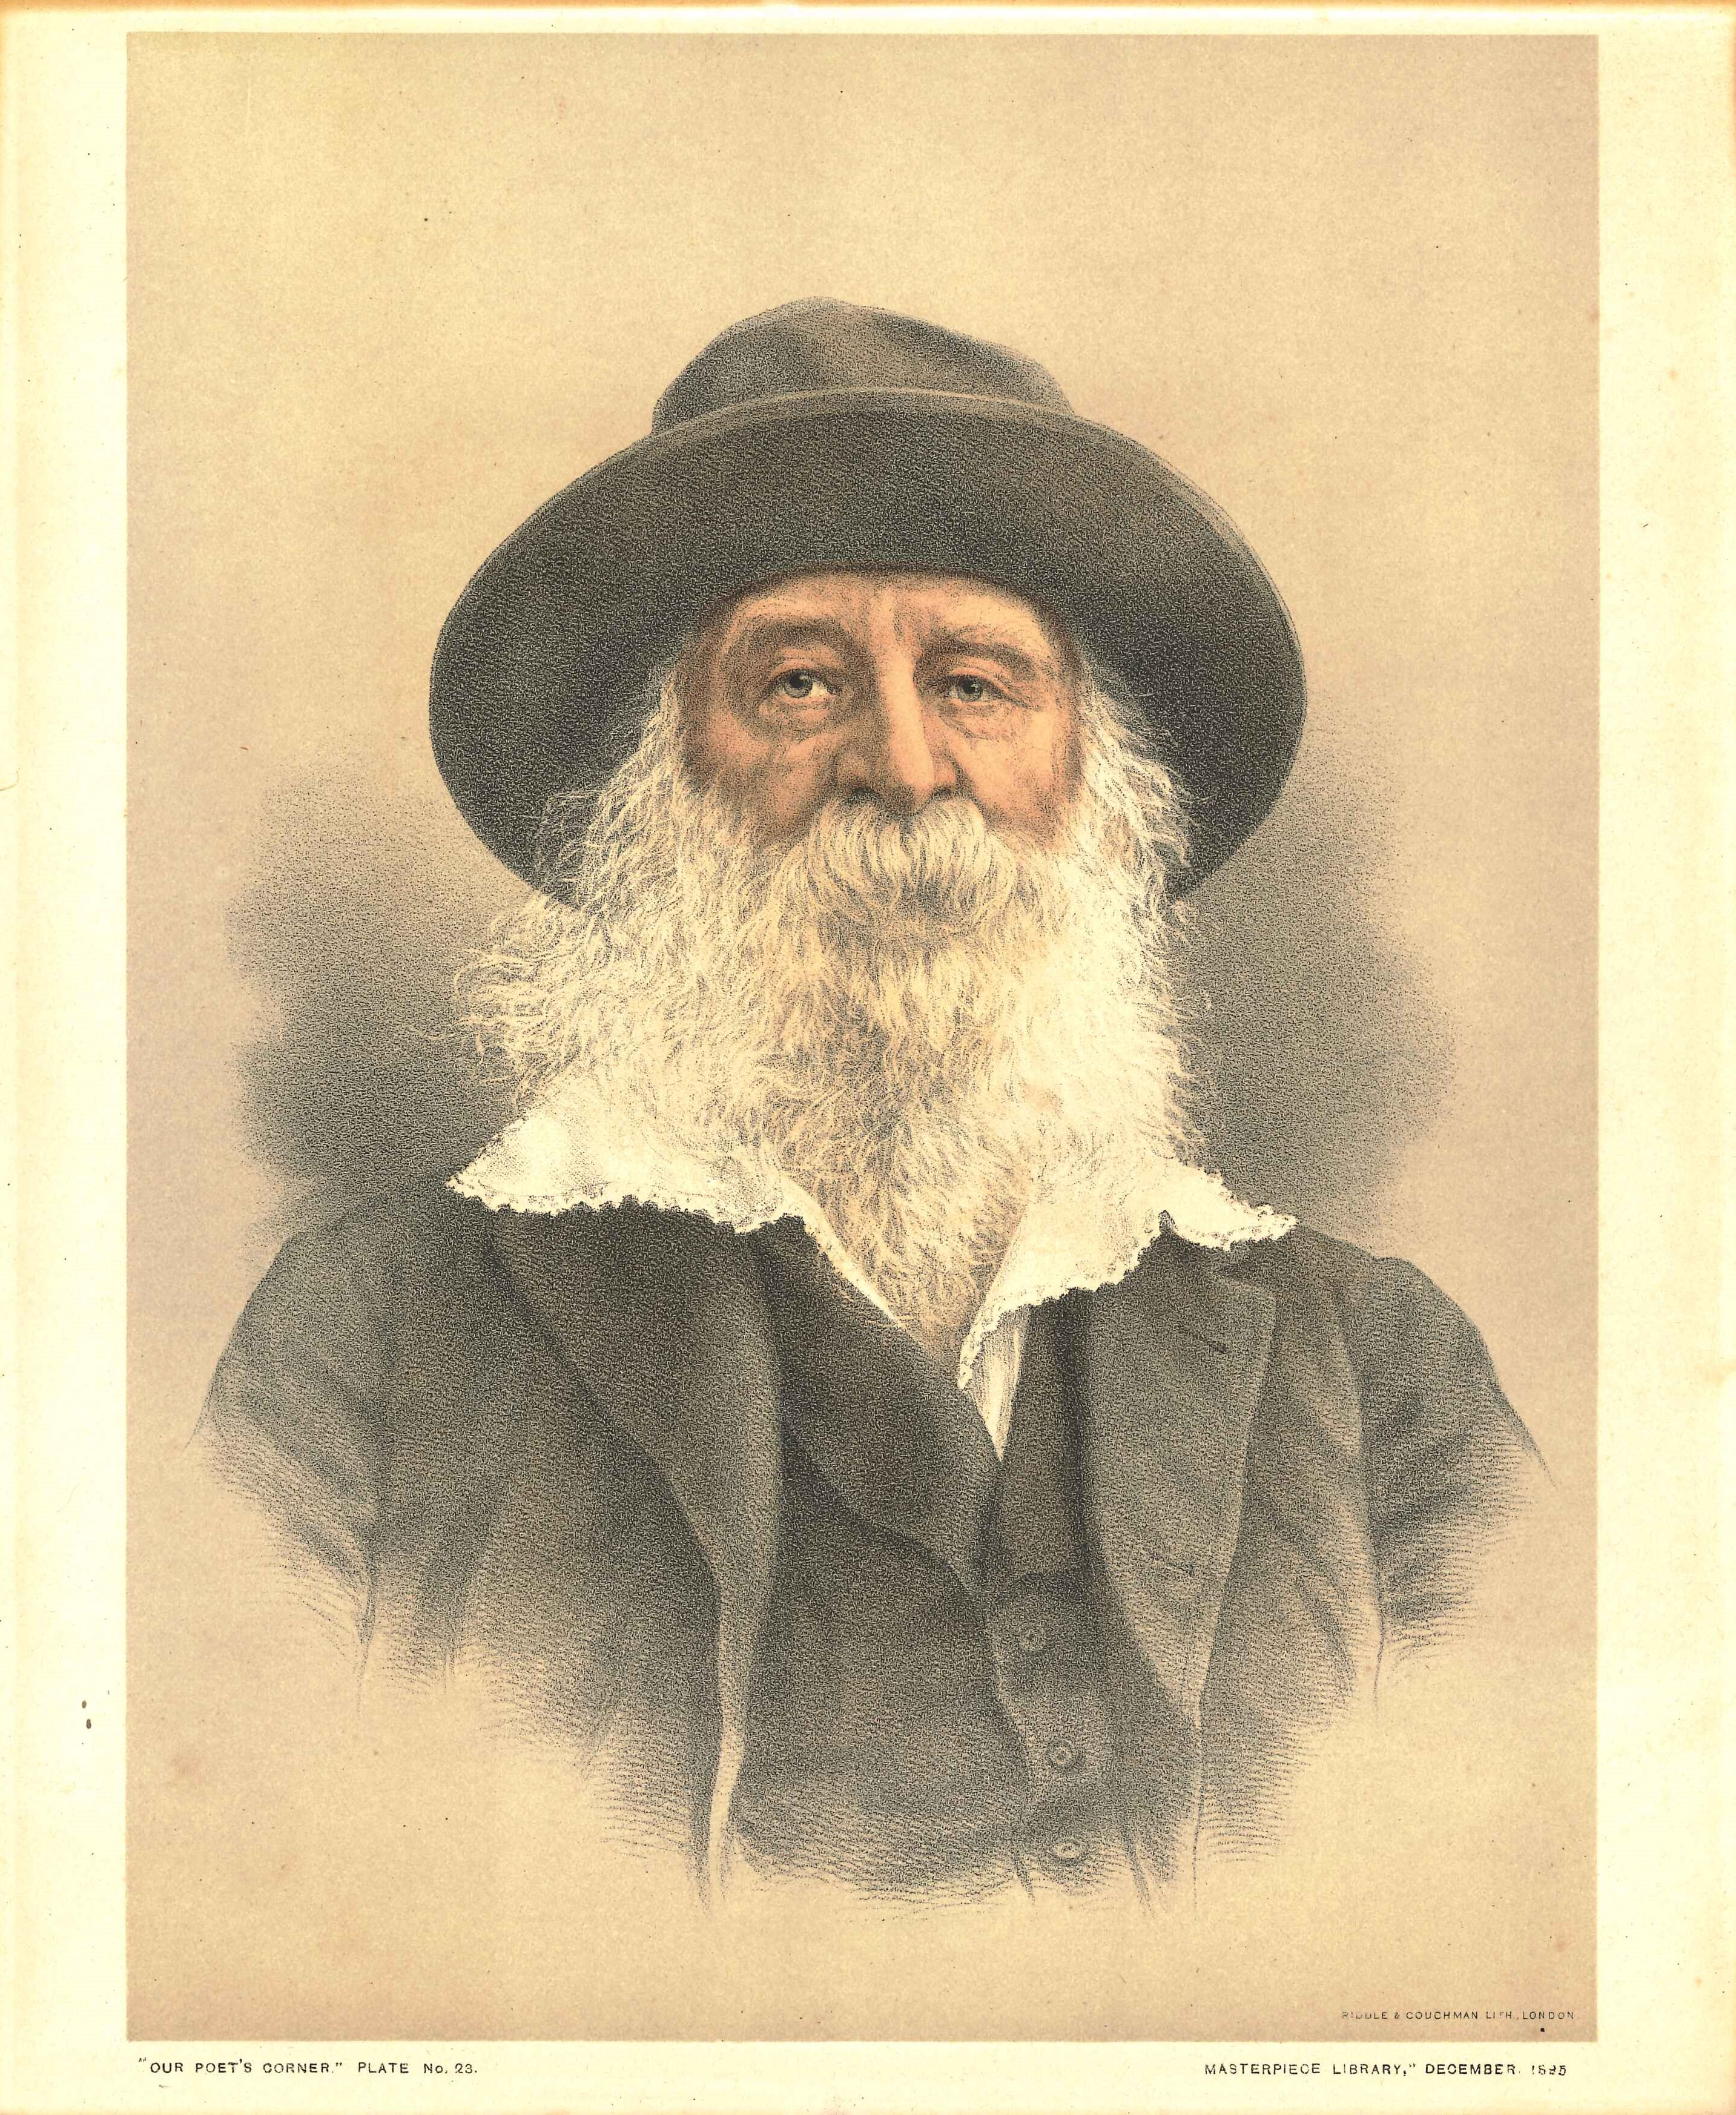 Lithograph portrait of Walt Whitman. From Our Poets' Corner: A Portrait Album of Famous Poets. London: Review of Reviews, December 1895.